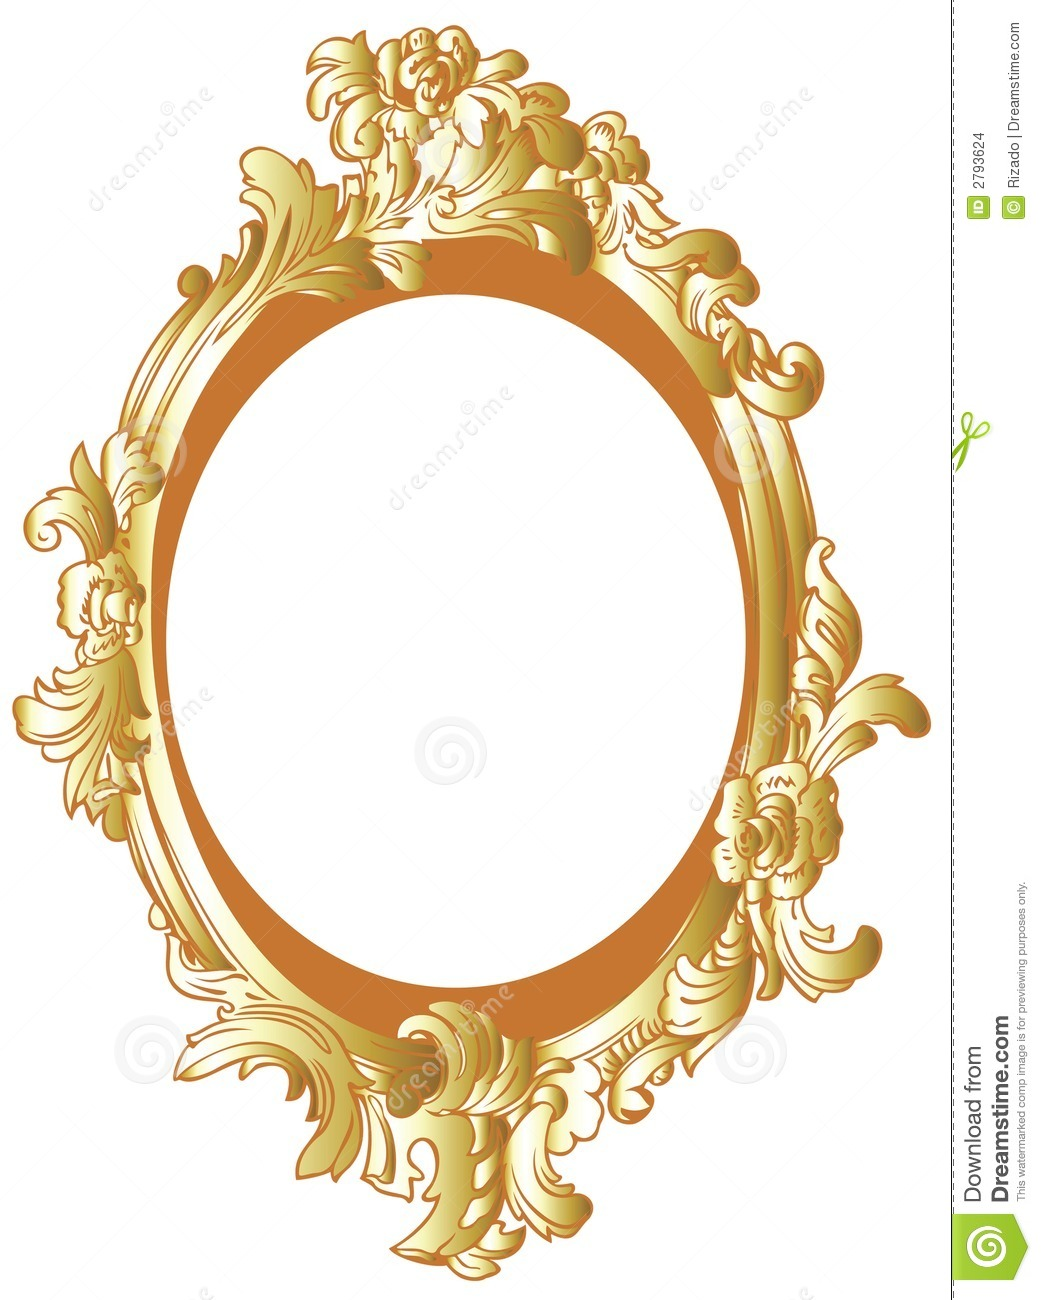 Oval Gold Frame Clipart.